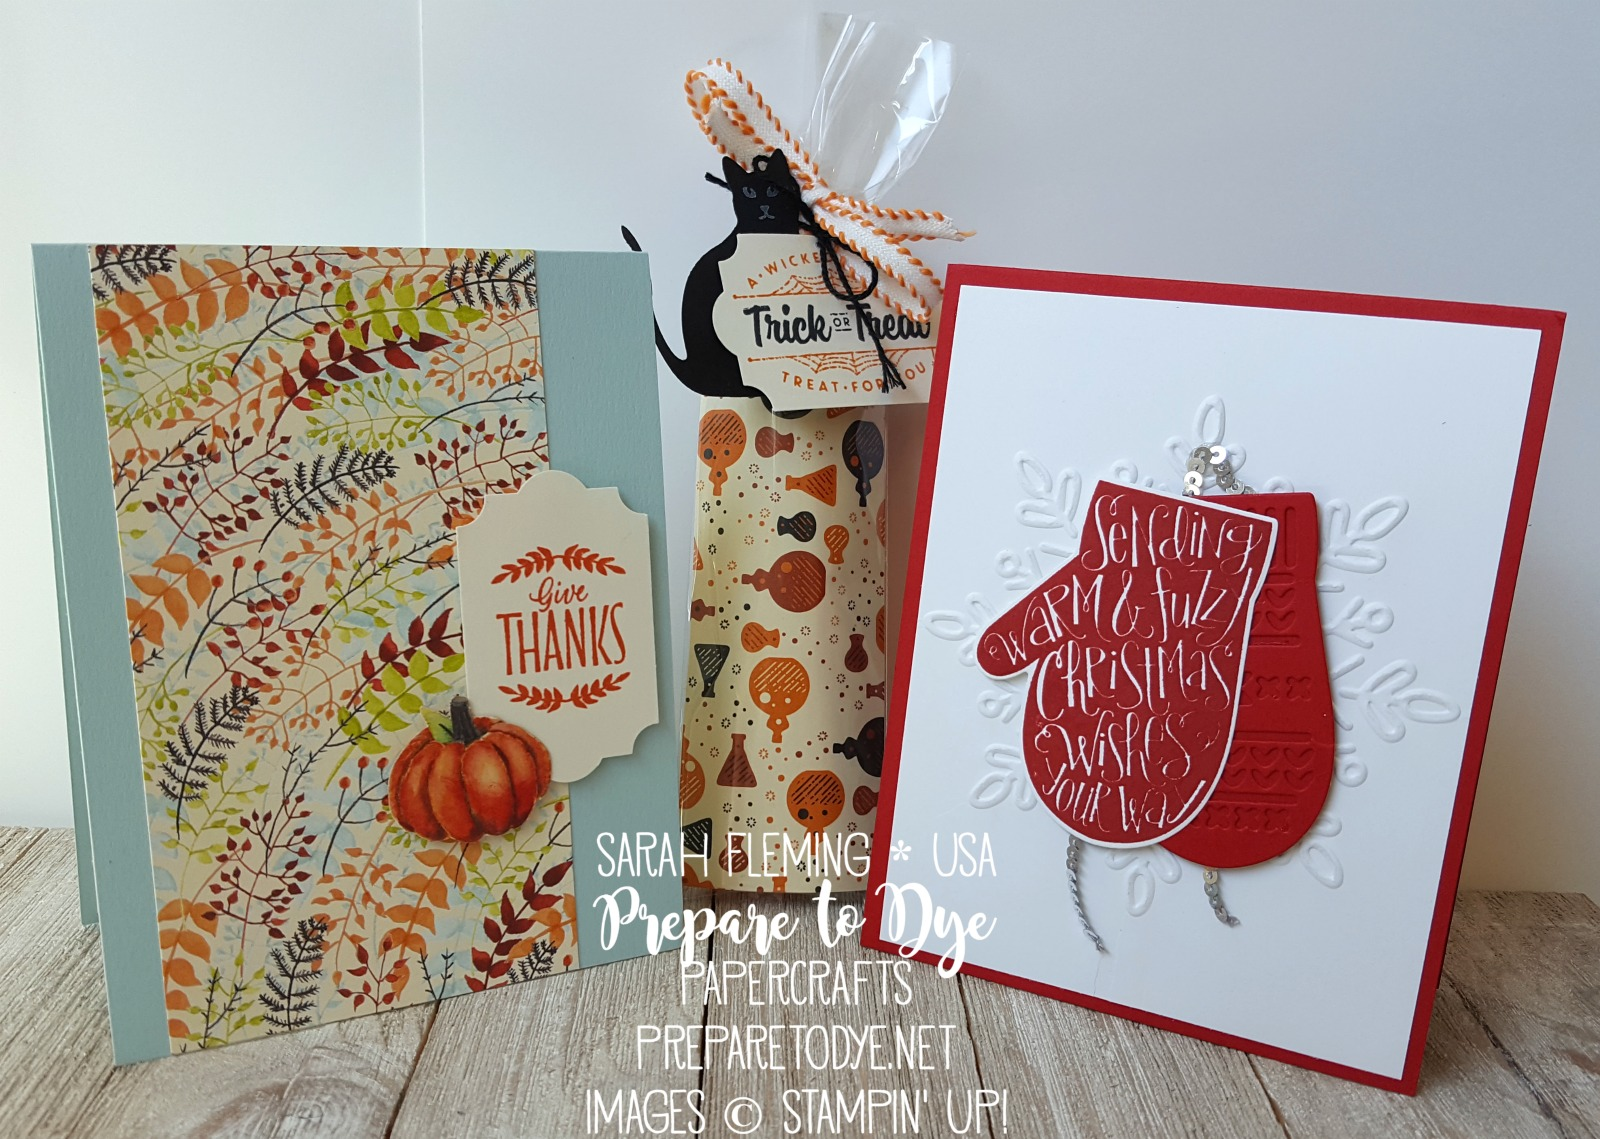 Stampin' Up! Holiday Catalog Halloween, Thanksgiving, and Christmas projects - Sarah Fleming - Prepare to Dye Papercrafts